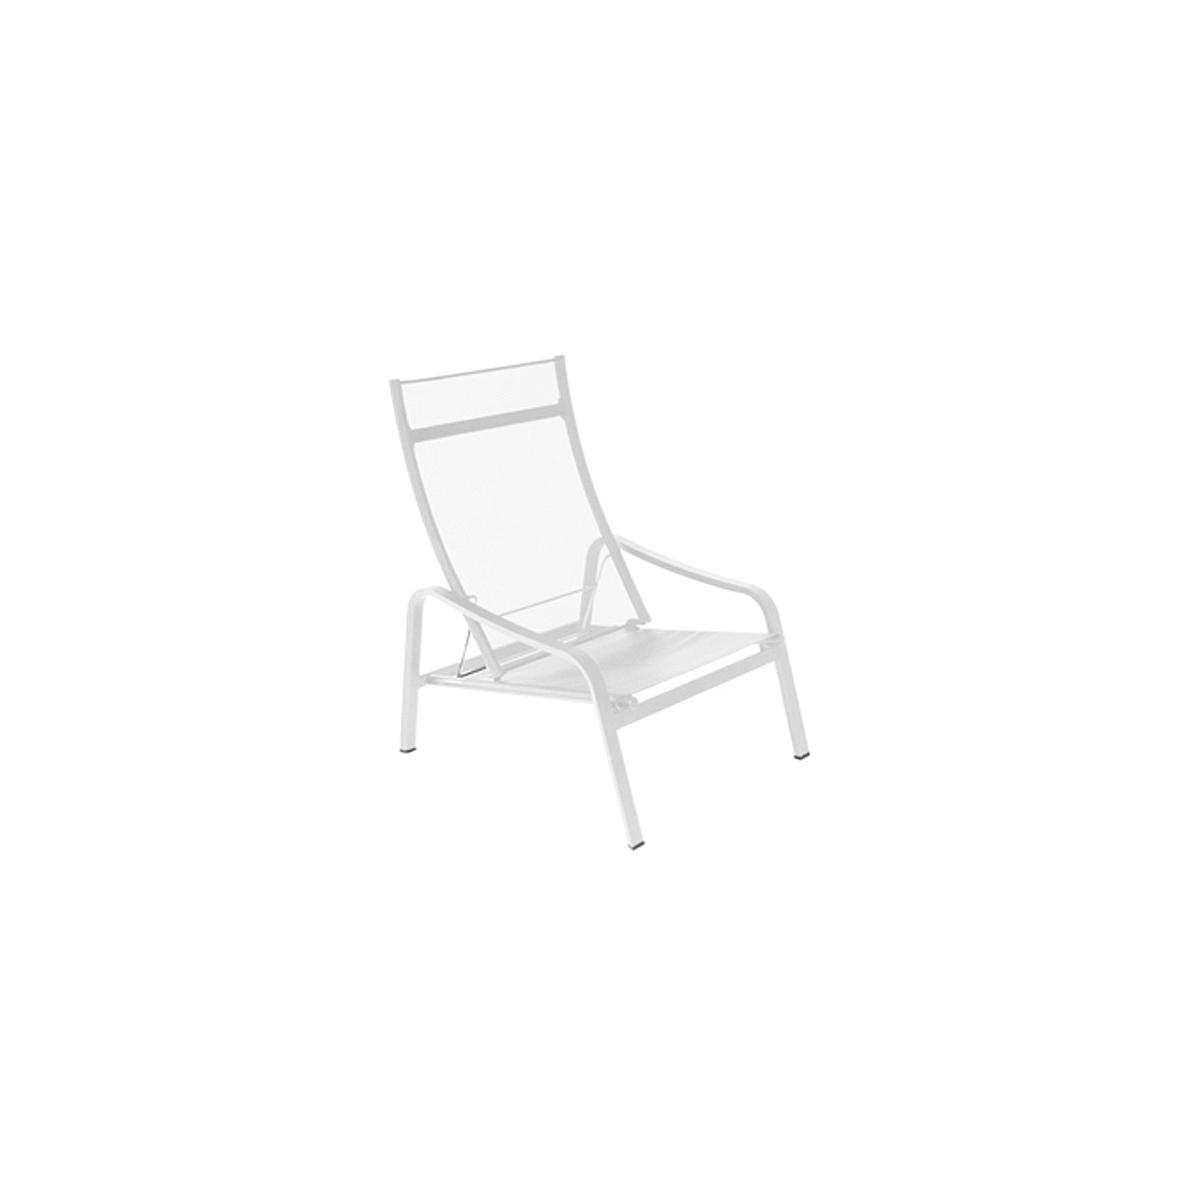 ALIZE by Fermob Fauteuil blanc coton